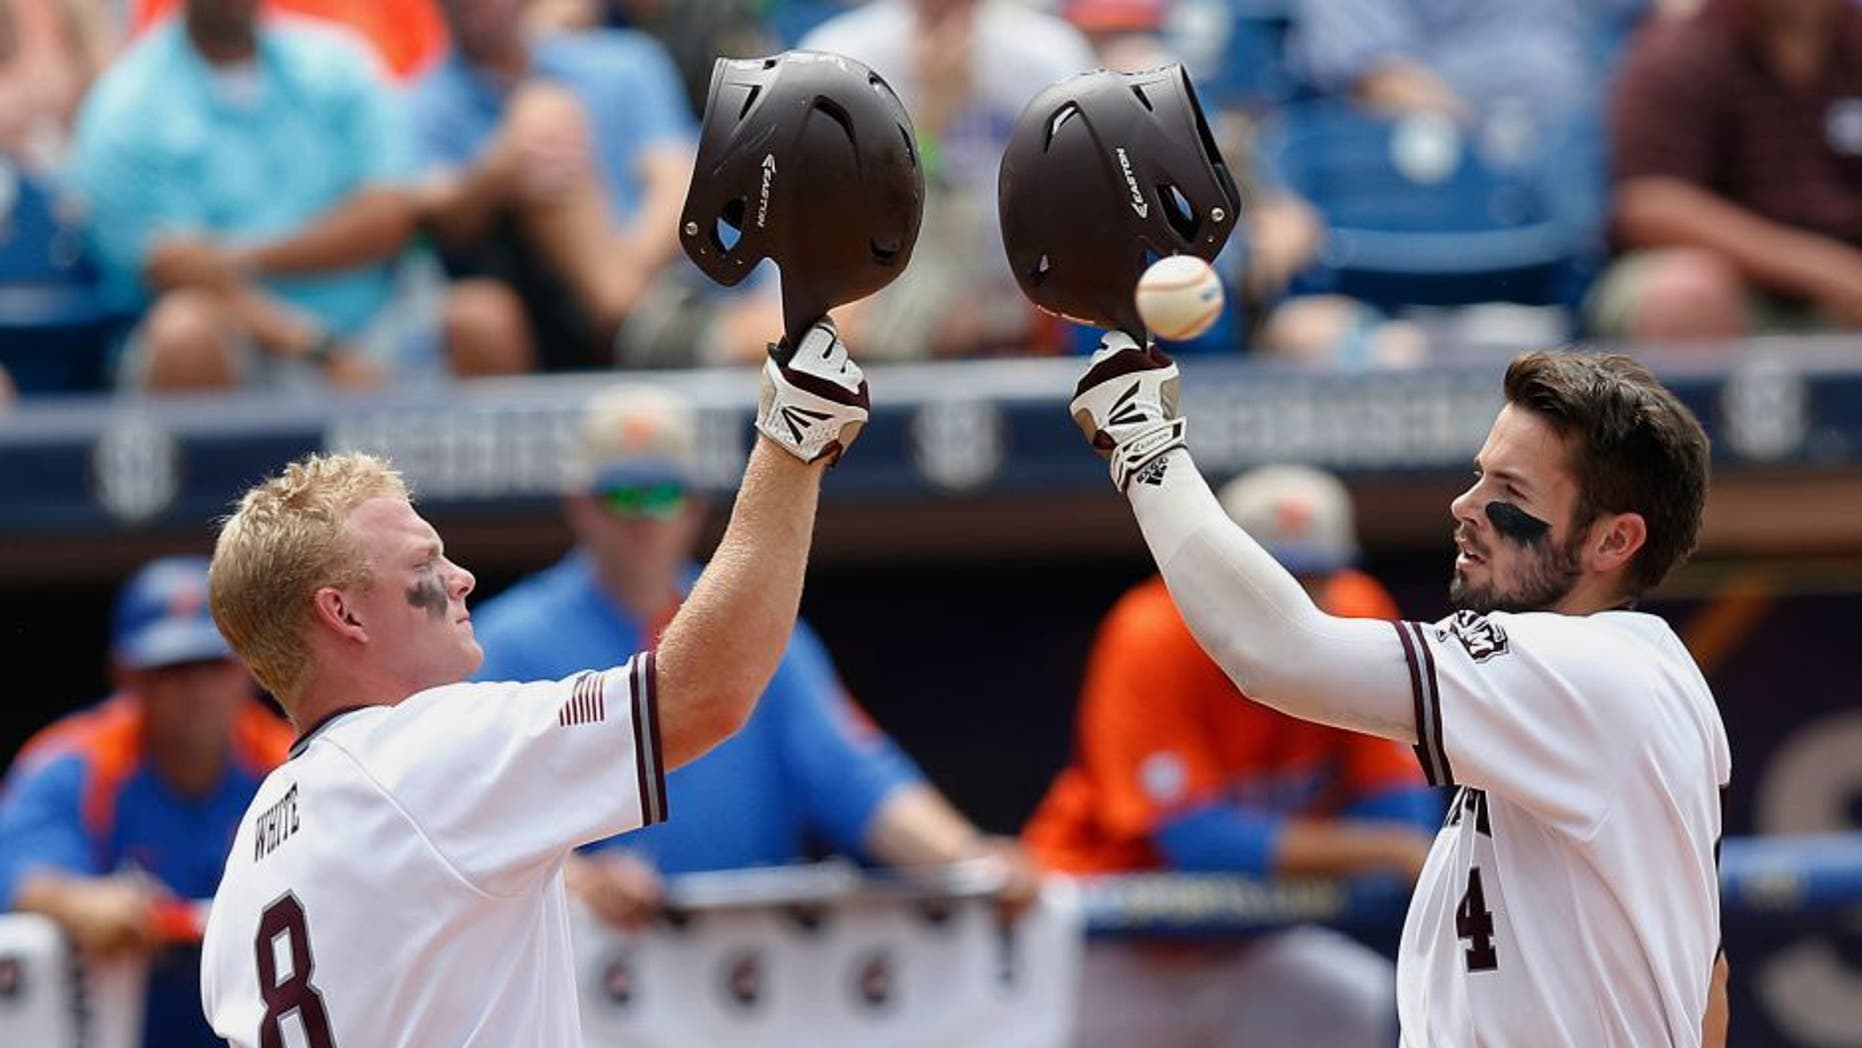 Texas A&M's Nick Banks, right, celebrates with Boomer White after Banks hits a solo home run in the third inning of the Southeastern Conference NCAA college baseball championship game at the Hoover Met, Sunday, May 29, 2016, in Hoover, Ala. Texas A&M won 12-5. (AP Photo/Brynn Anderson)